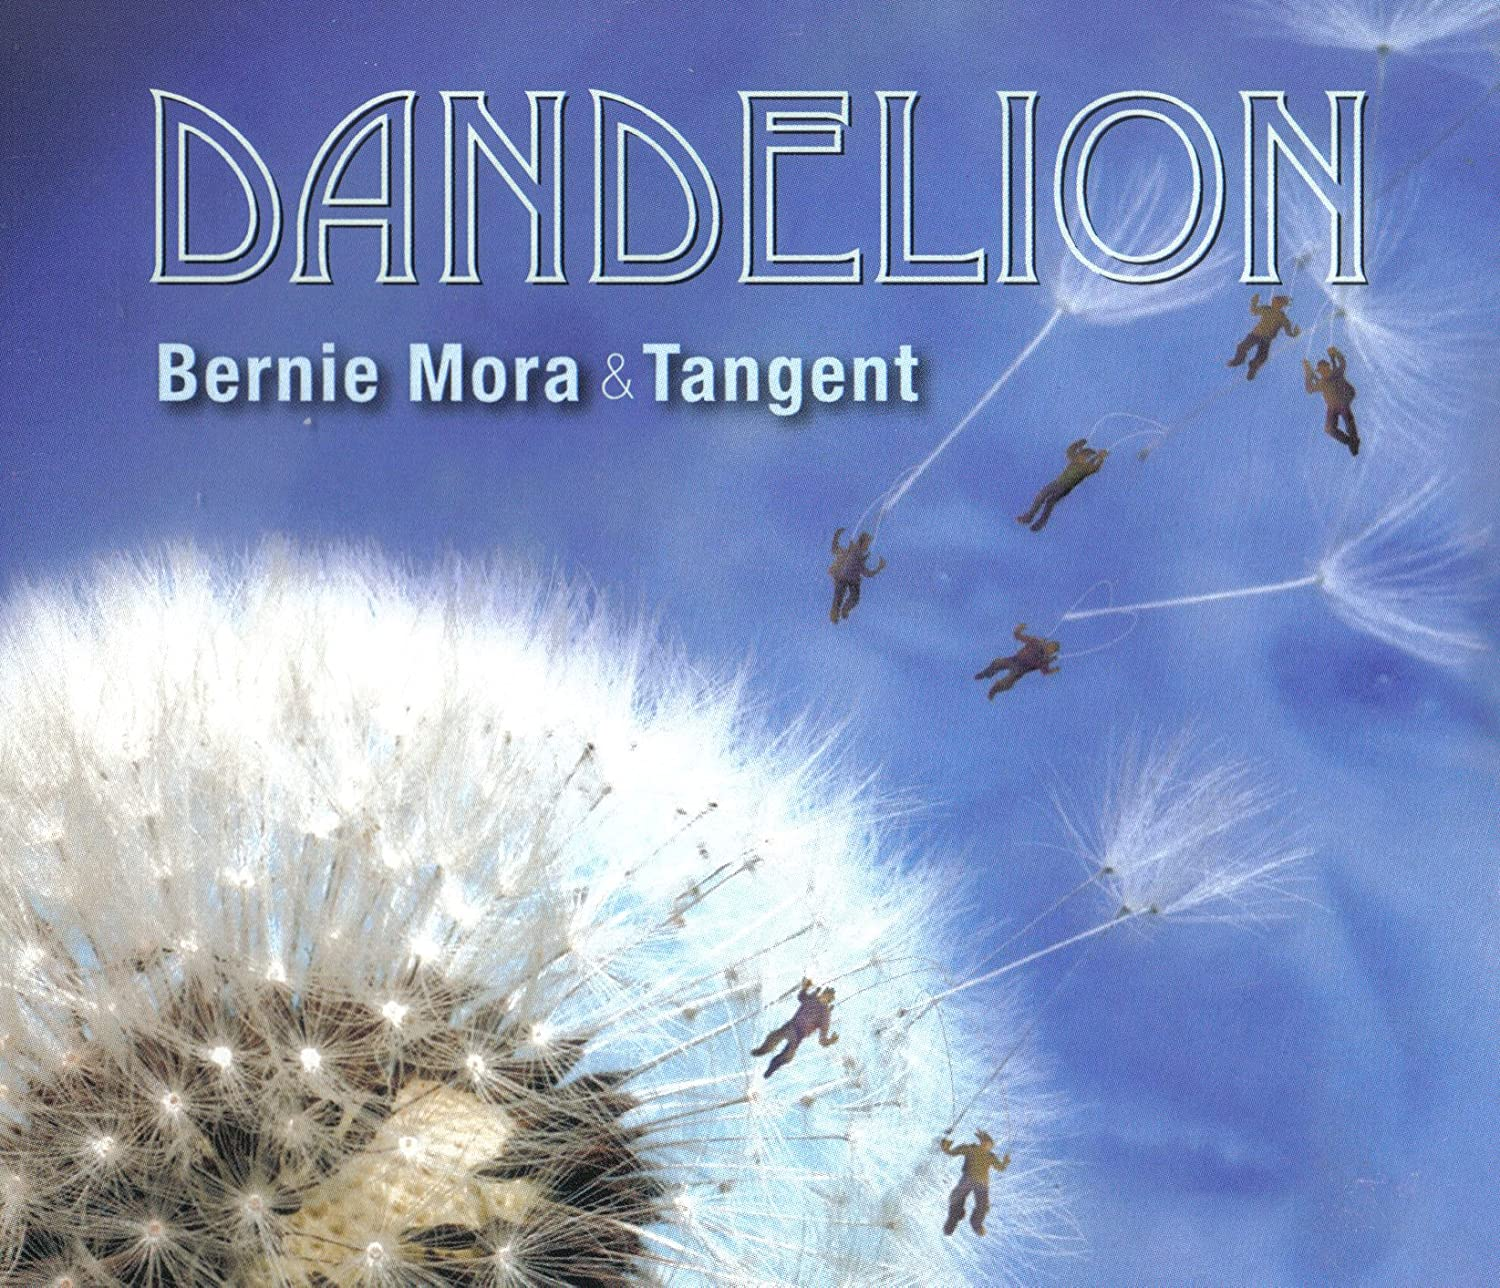 Year-end annual account 70% OFF Outlet Dandelion